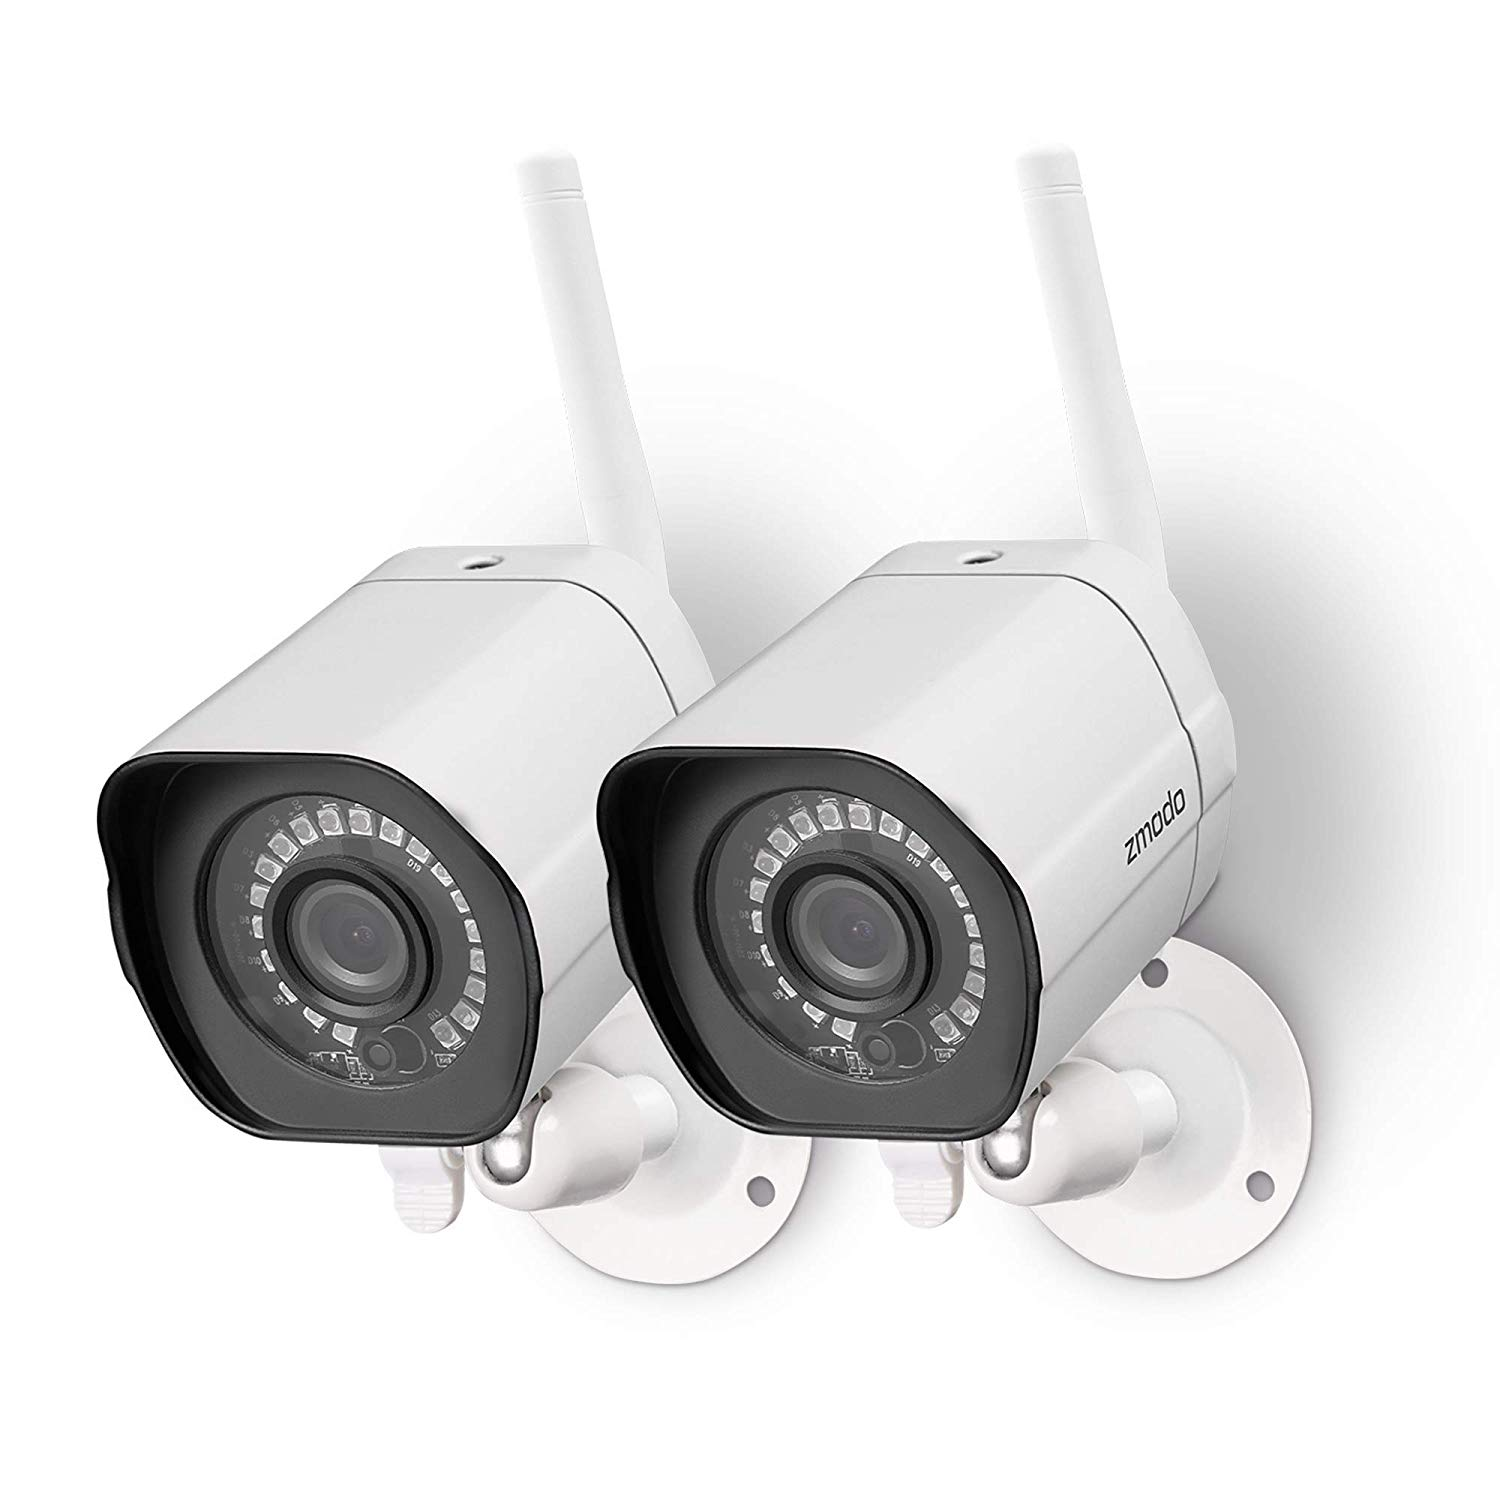 Zmodo 720p HD Outdoor Home Wifi Security Surveillance Video Cameras System (2 Pack), Work with Google Assistant - Free 6-Month Cloud Service Available